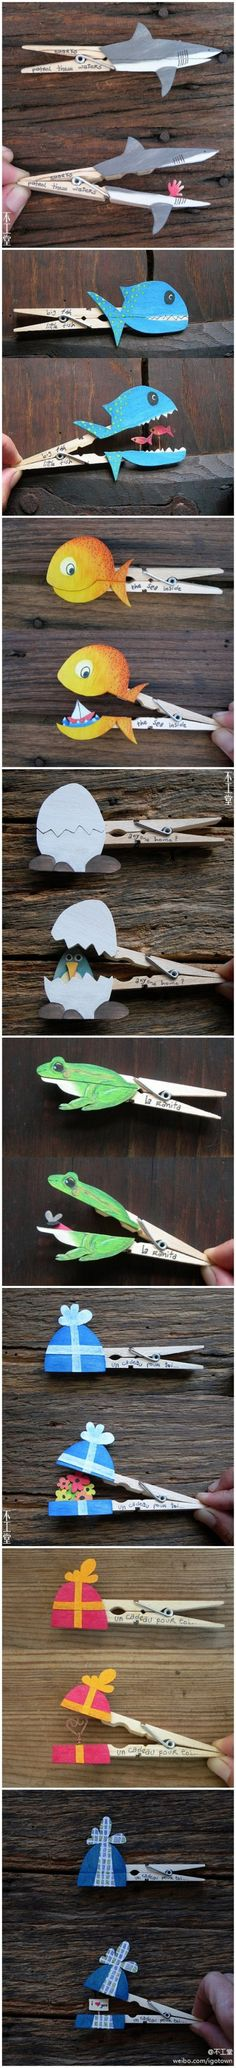 Clothespin critters - kids' summer activity